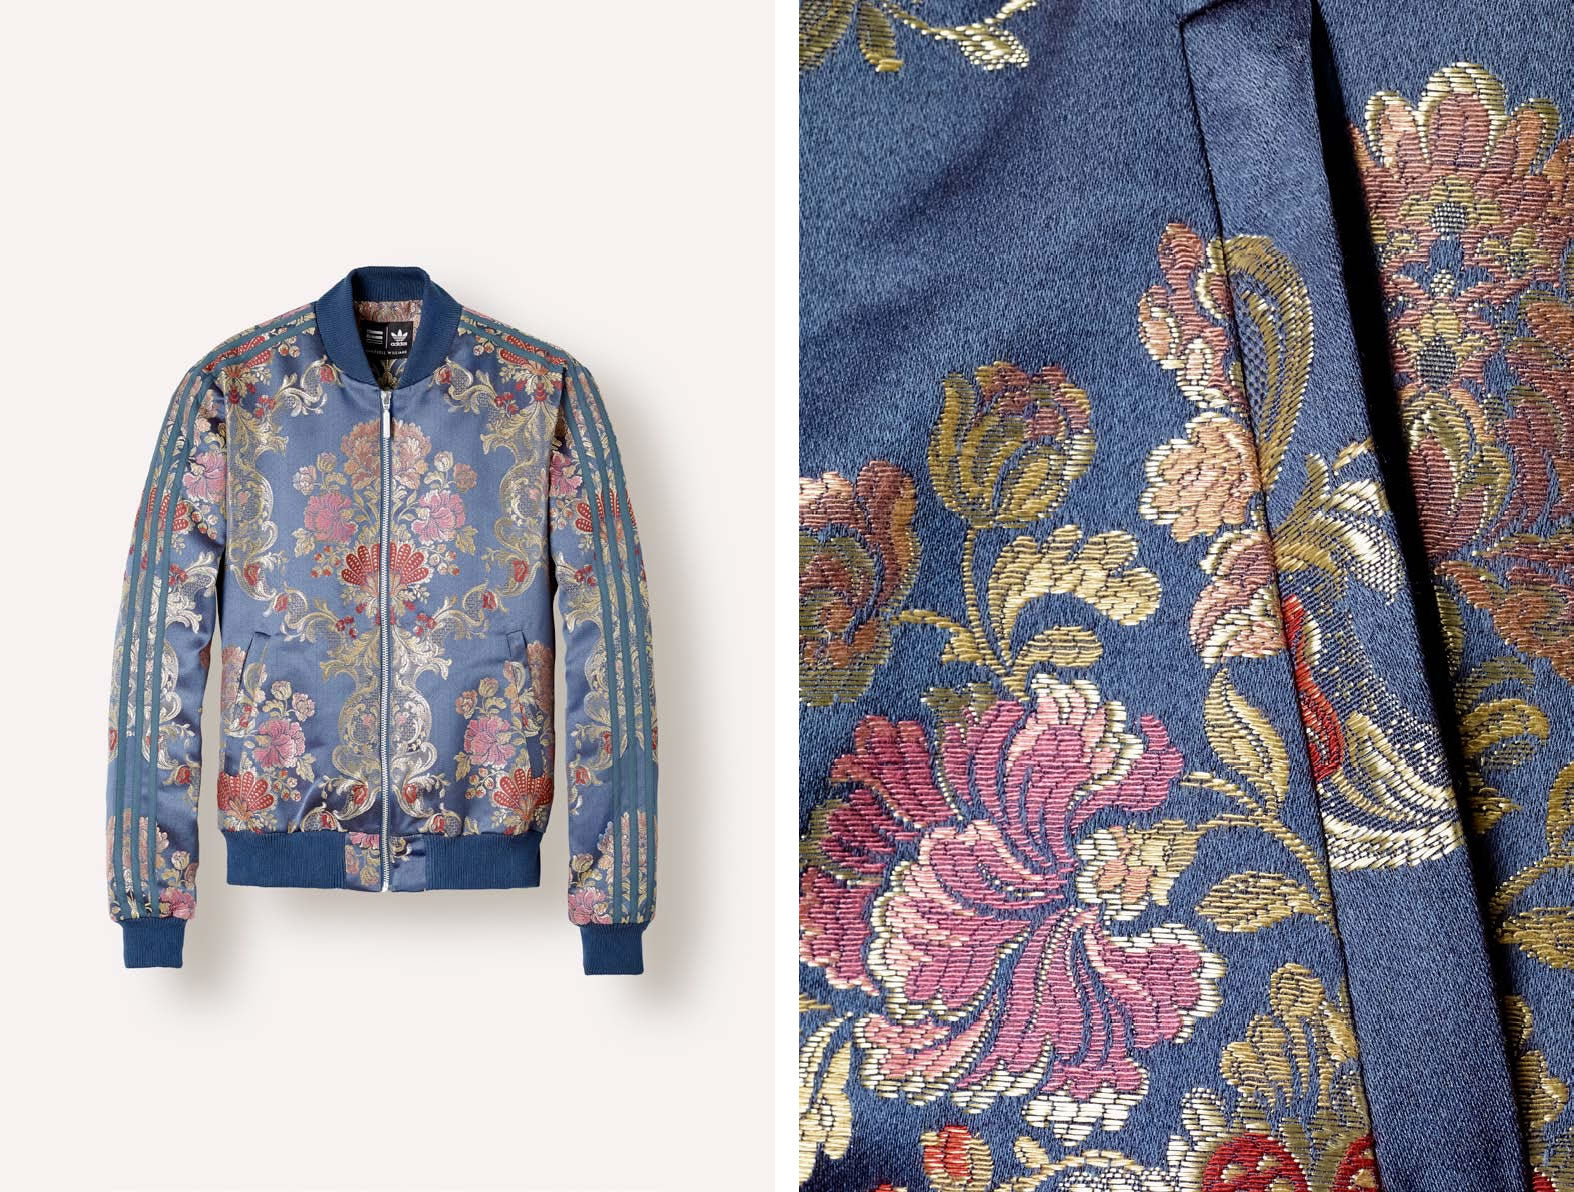 459c8dfb512e Adidas x Pharrell Williams Jacquard Track Jacket LM Price  £539.00. Launch   30th May 00 01BST